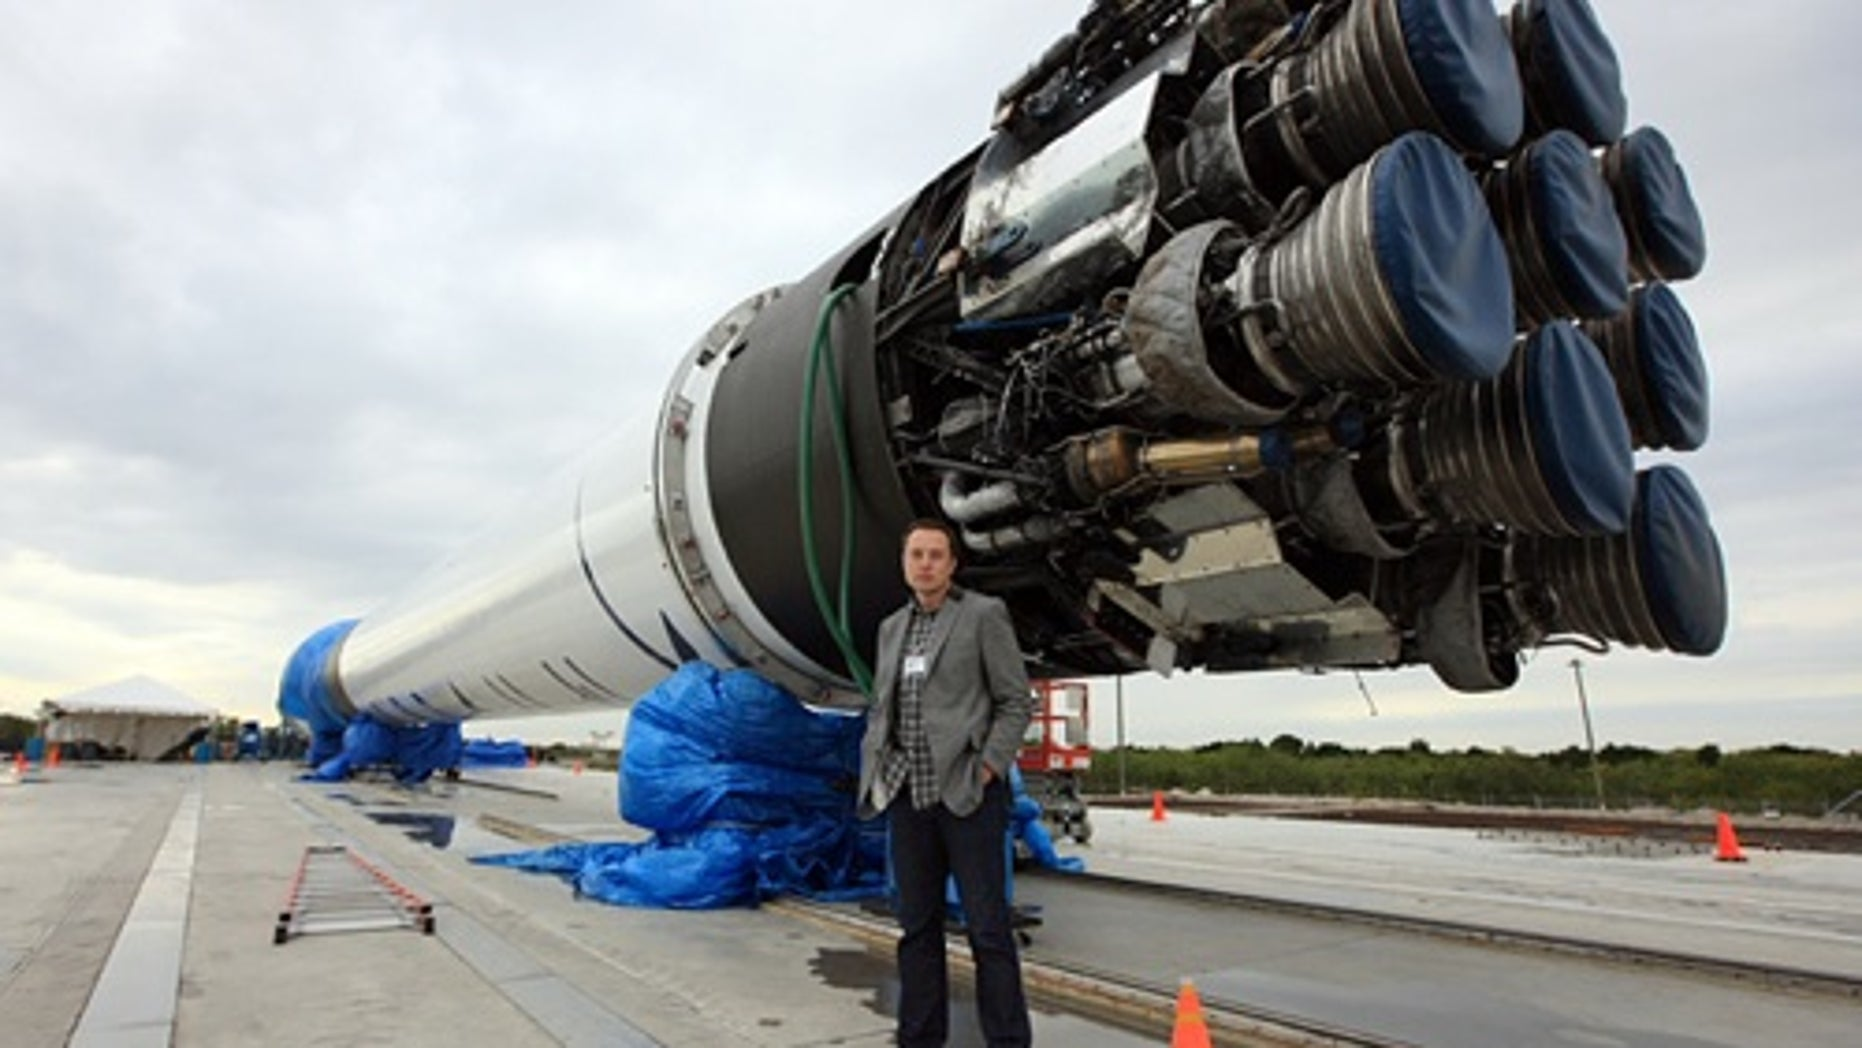 SpaceX Founder, Elon Musk, stands in front of his newest toy -- the Falcon 9 rocket.